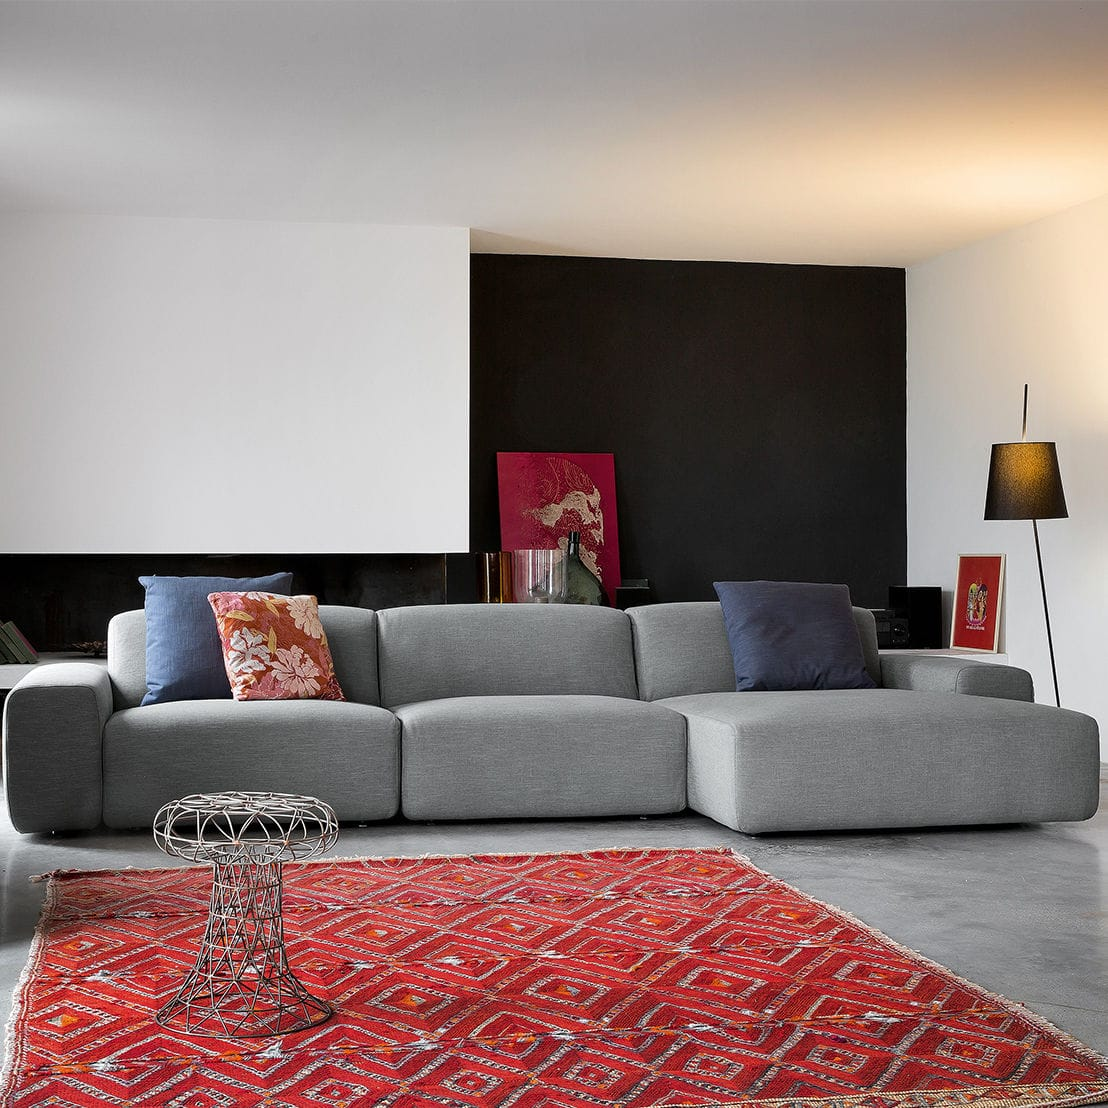 Modulierbares Sofa / Eck / modern / Stoff - DOMINO - Dall\'Agnese ...